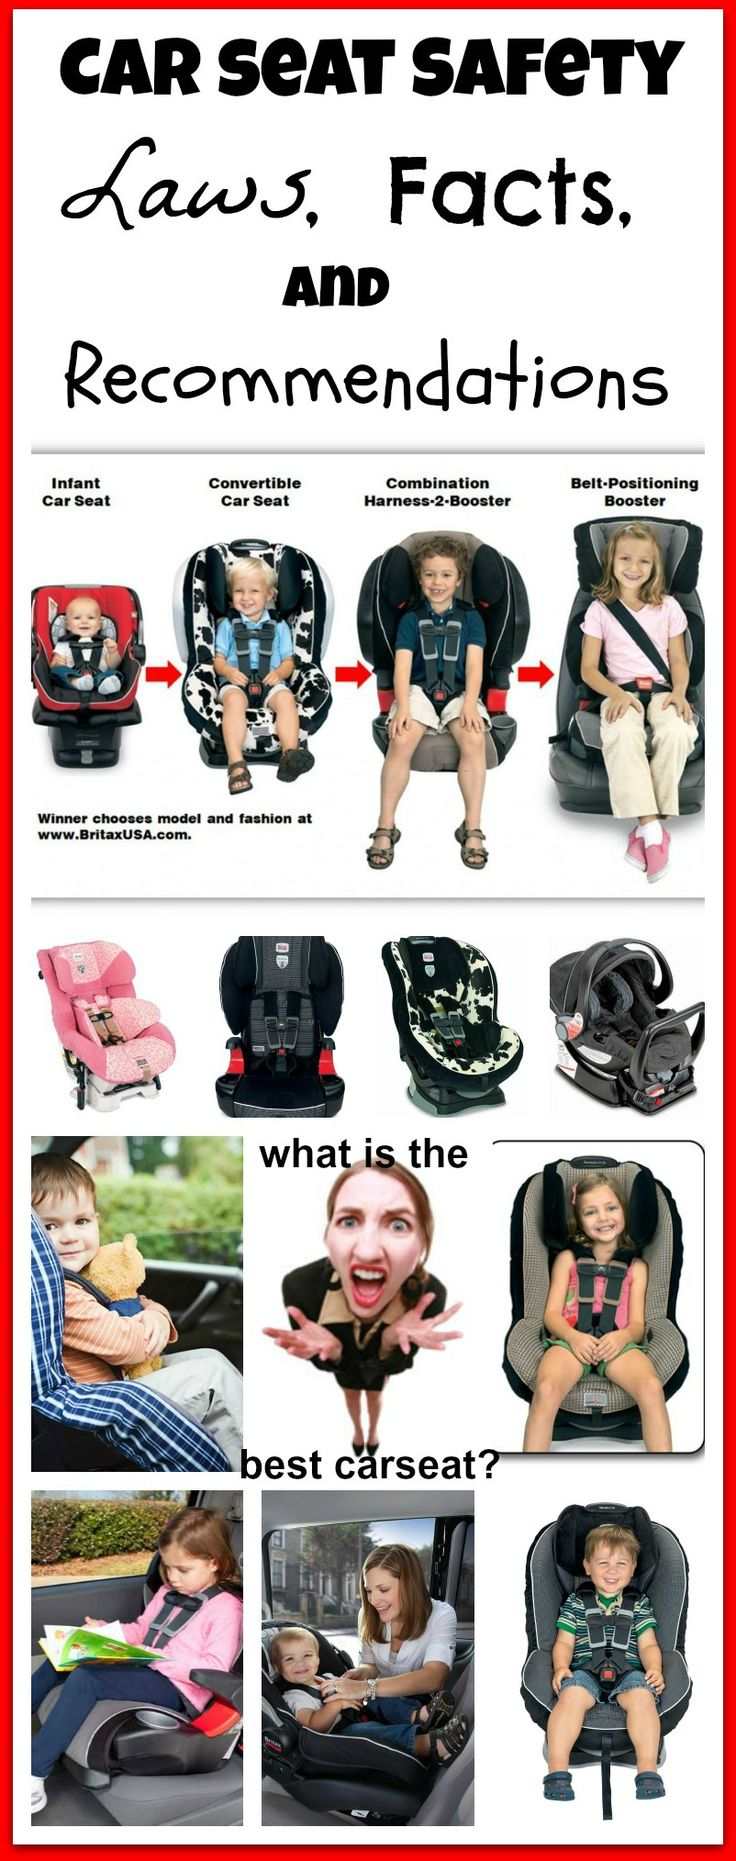 Car Seat Laws, Facts, and Recommendations! Which car seat is the best? Should my child still be in a 5 point harness? Am I putting my child at risk every time we drive? Am I violating car seat laws? Am I practicing proper car seat safety?